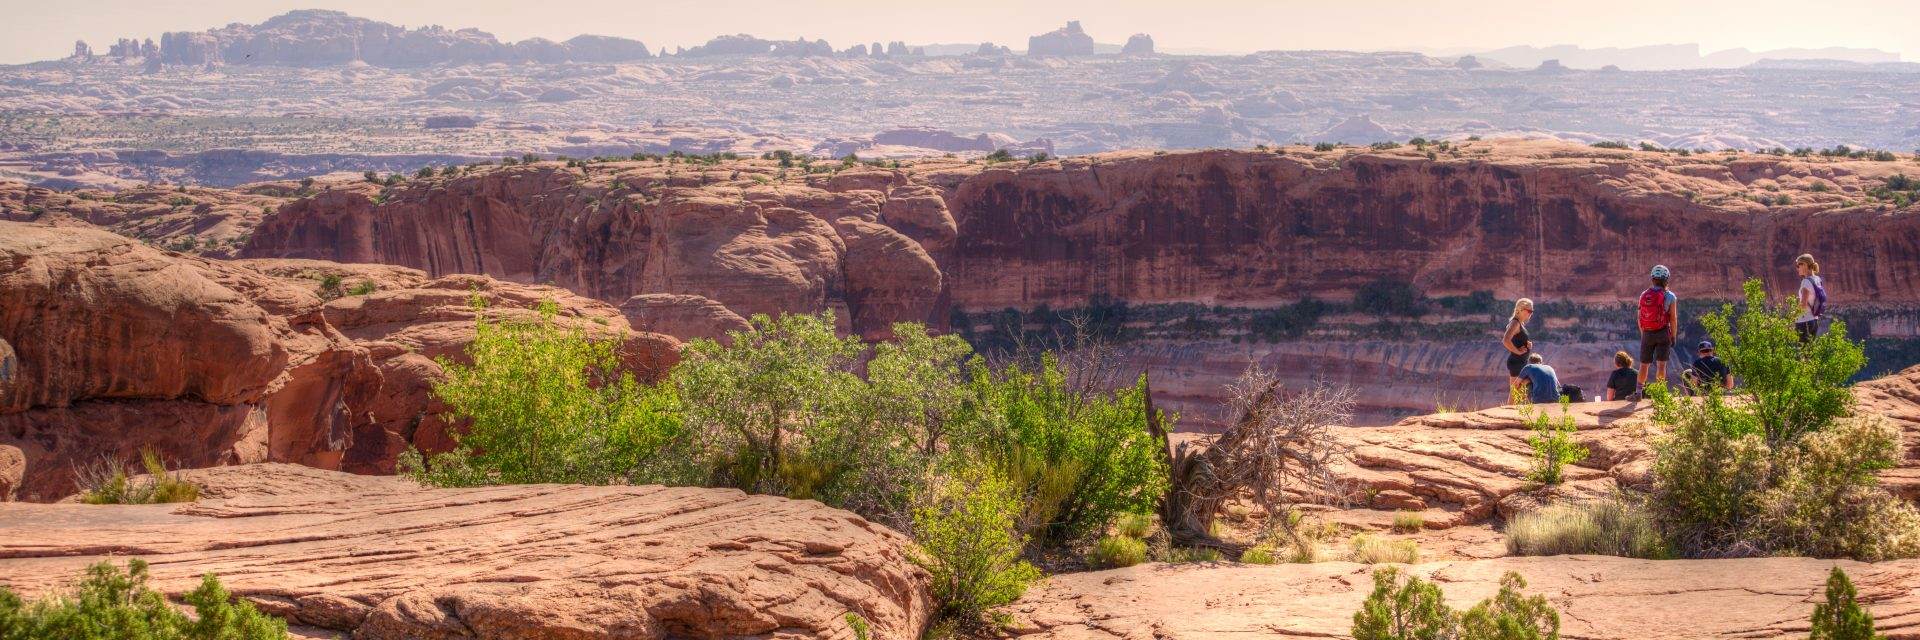 A group of mountain bike riders stop to take in the views of Arches National Park's North Windows section